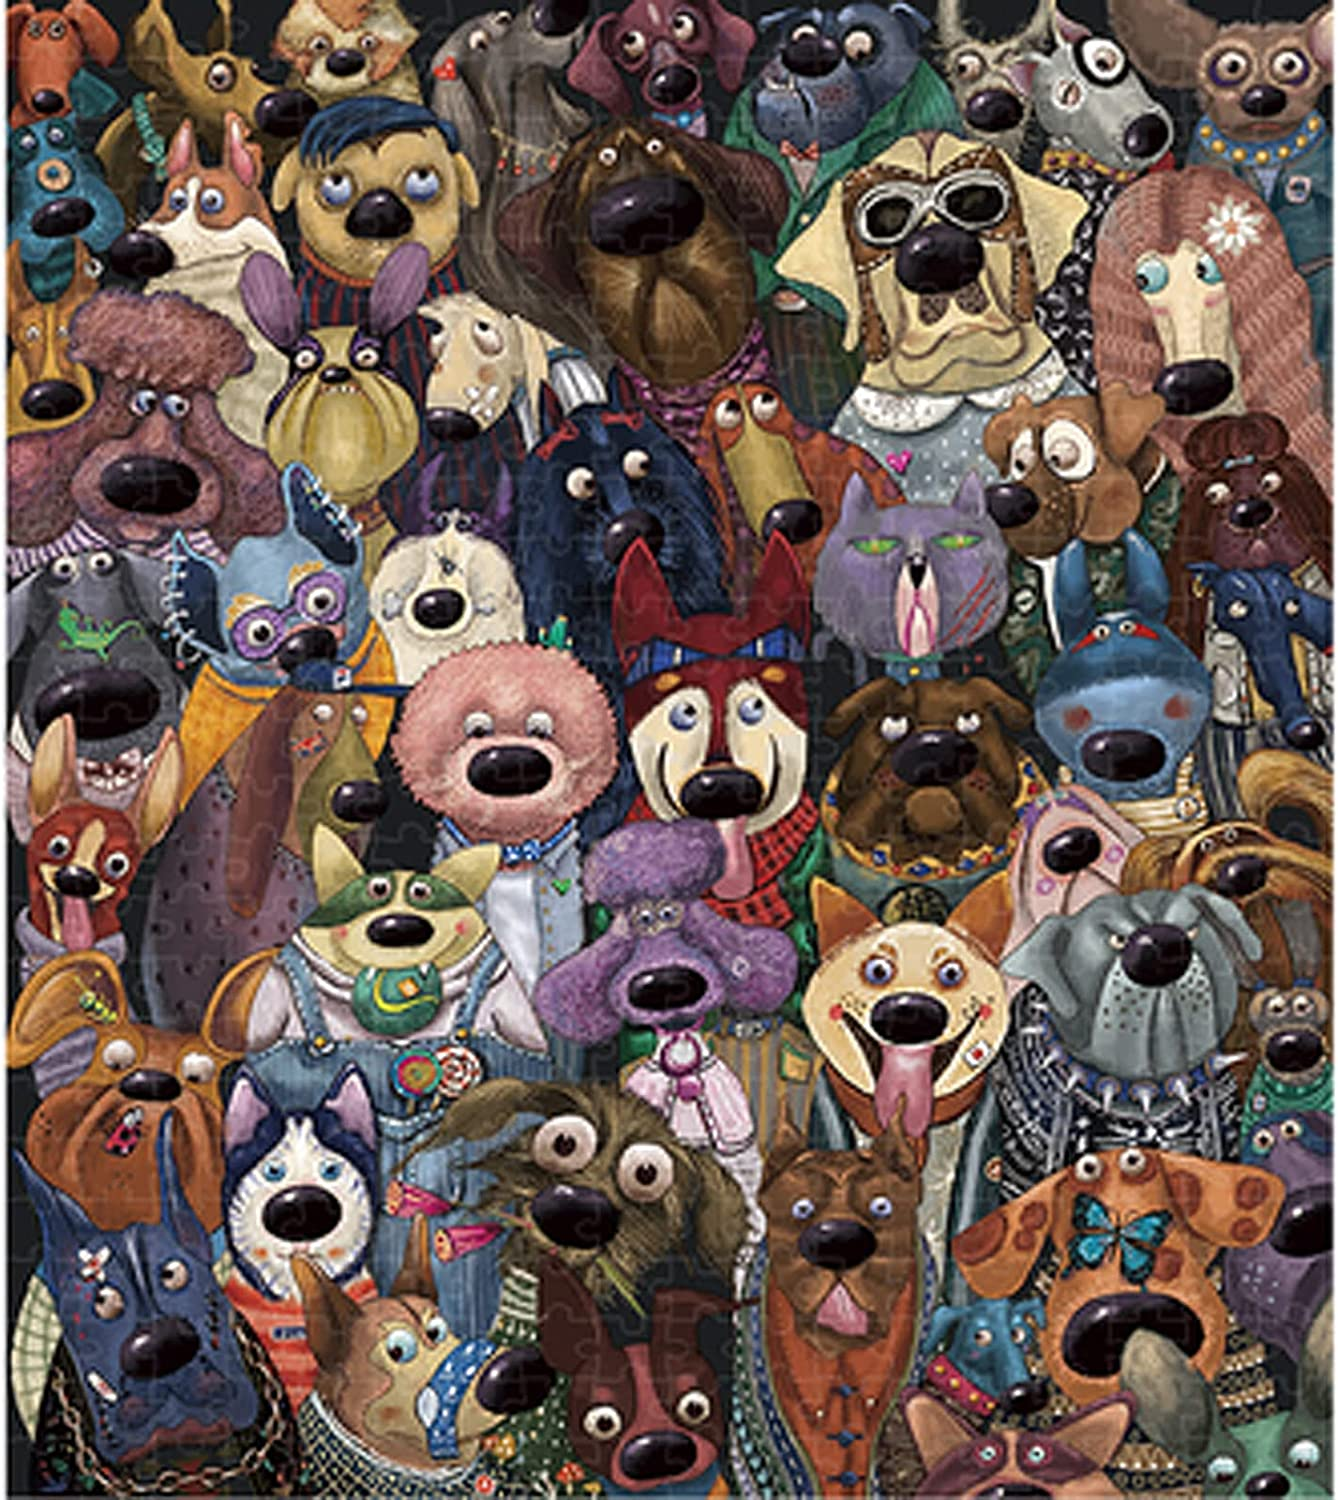 Dedication 1000 Pieces of Dogs store Group Photo Carto Jigsaw Puzzle Anime Wooden